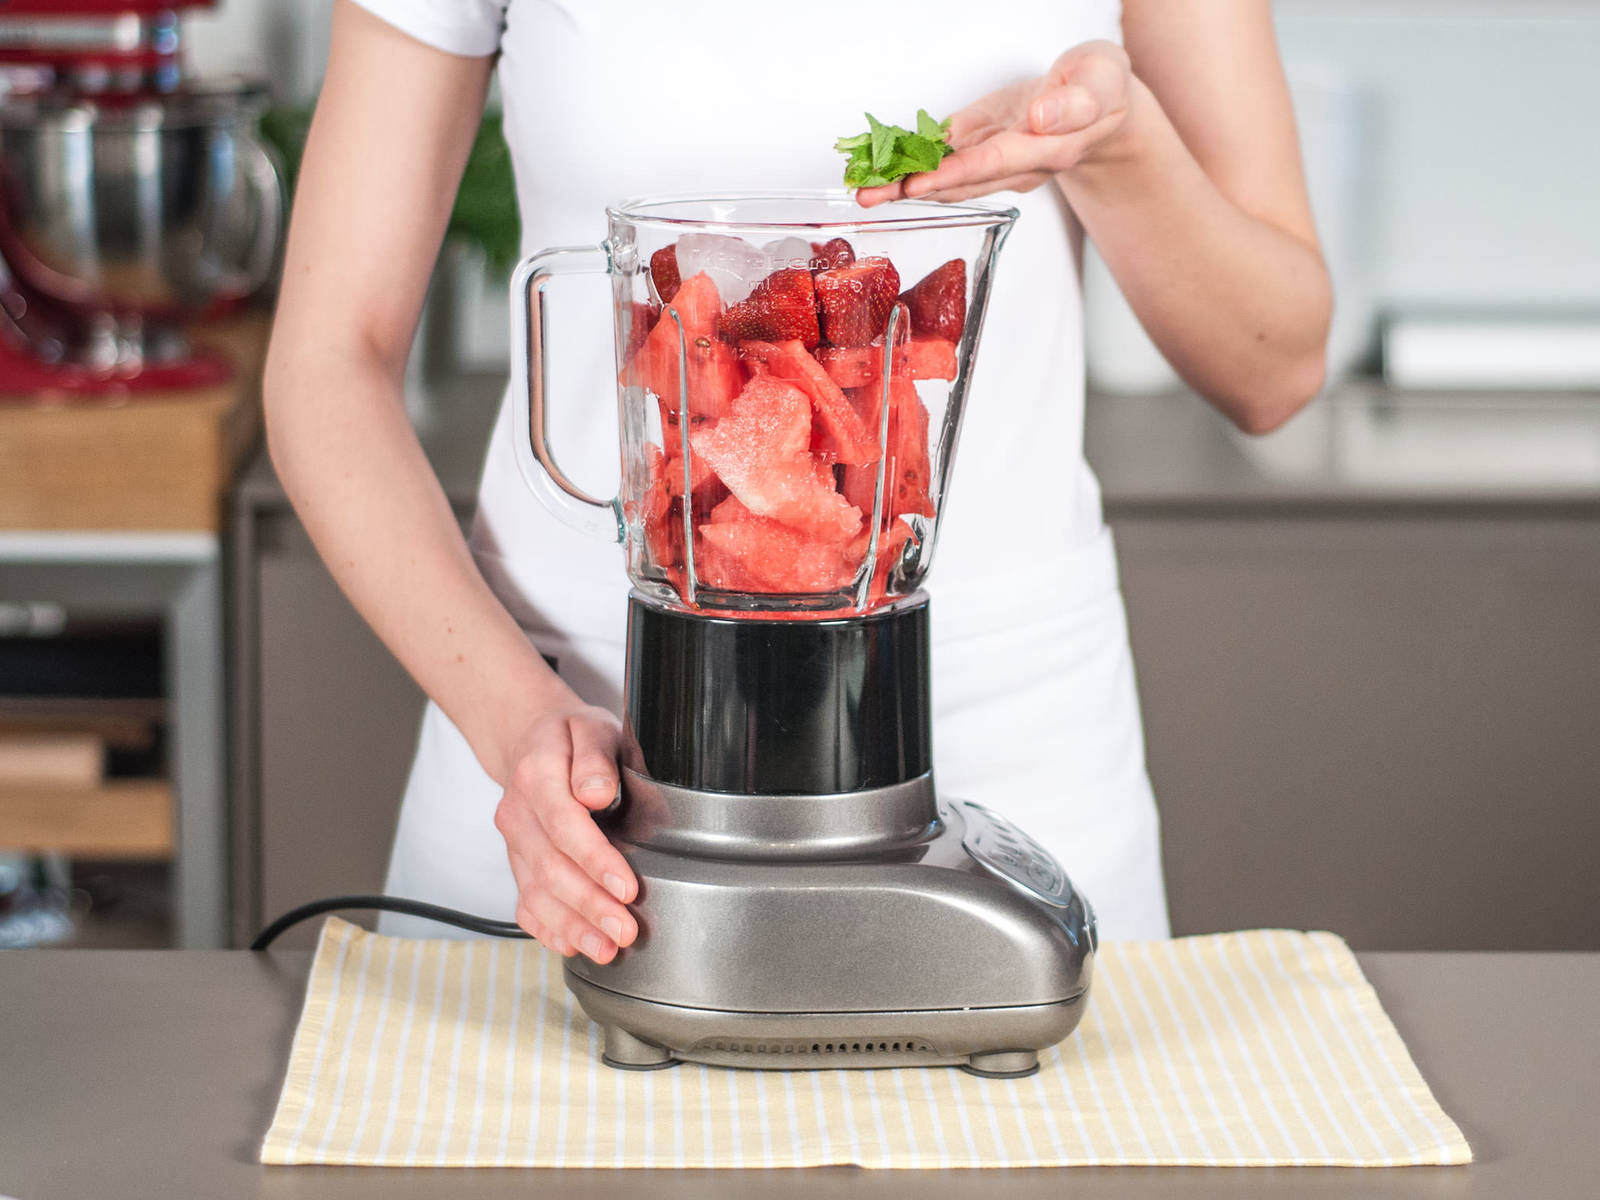 Add strawberry, watermelon, lime juice, ice cubes, and mint leaves to blender. Blend until smooth for approx. 2 – 3 min. Enjoy while cold.